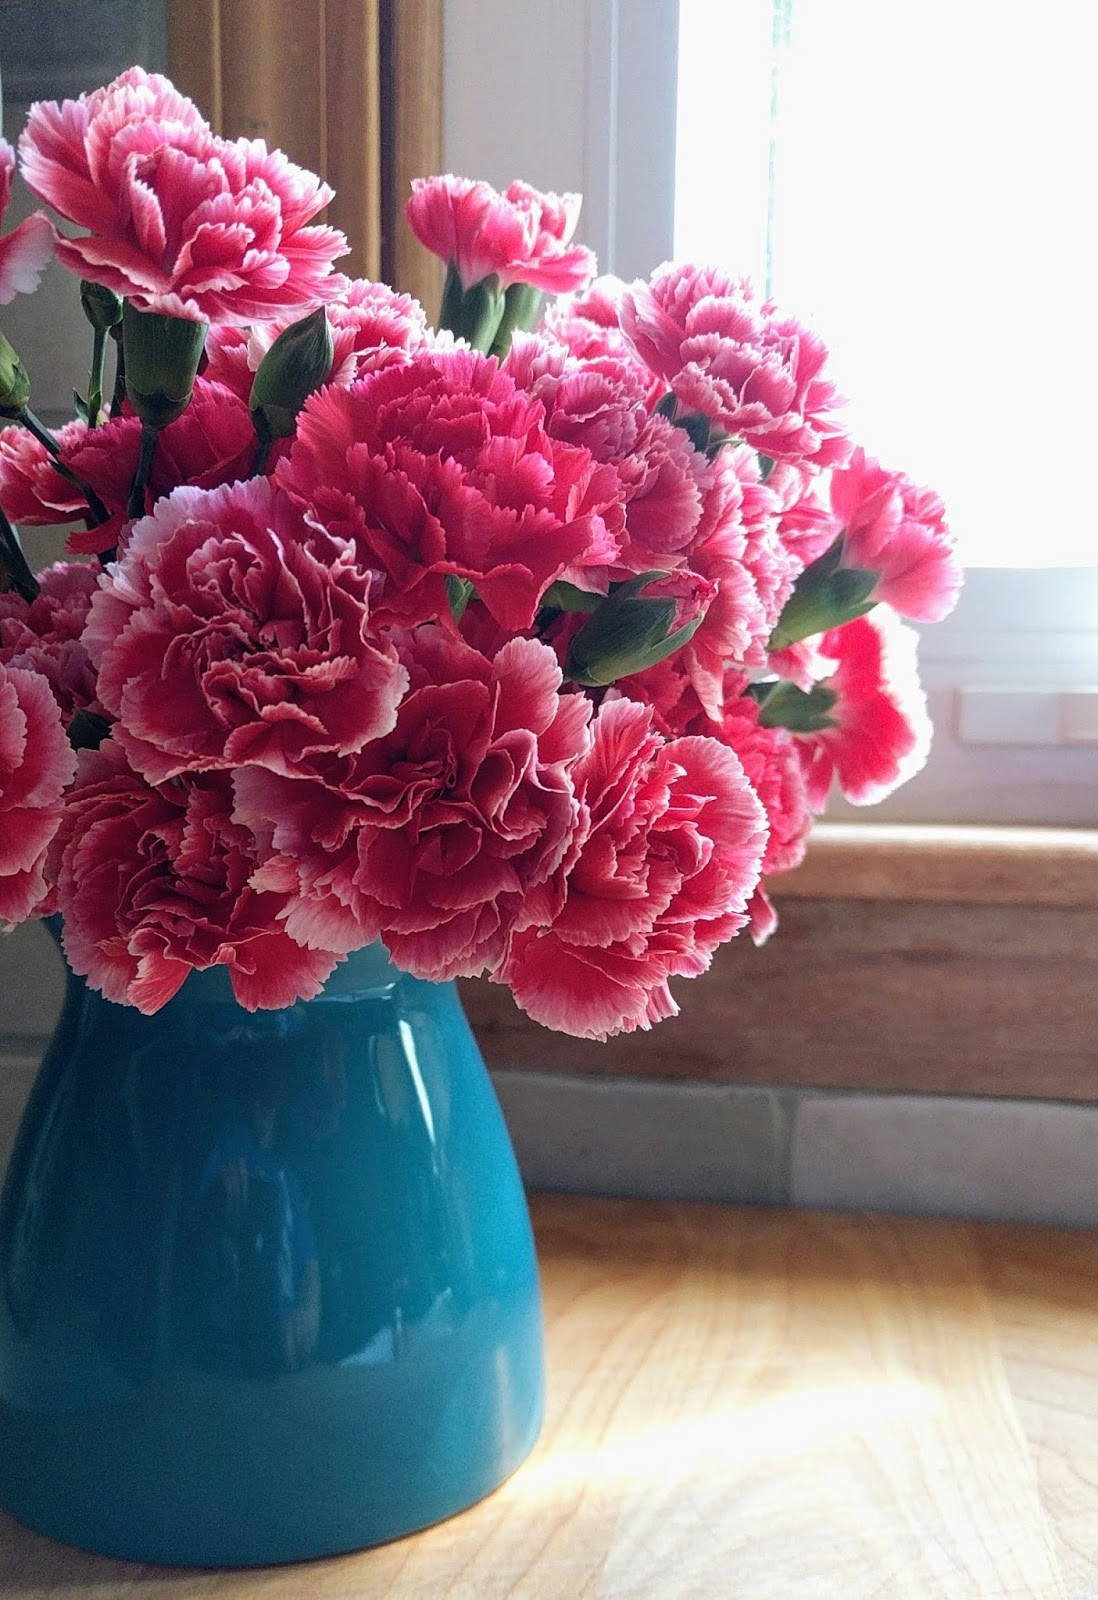 Deep pink carnations in a turquoise blue ceramic vase